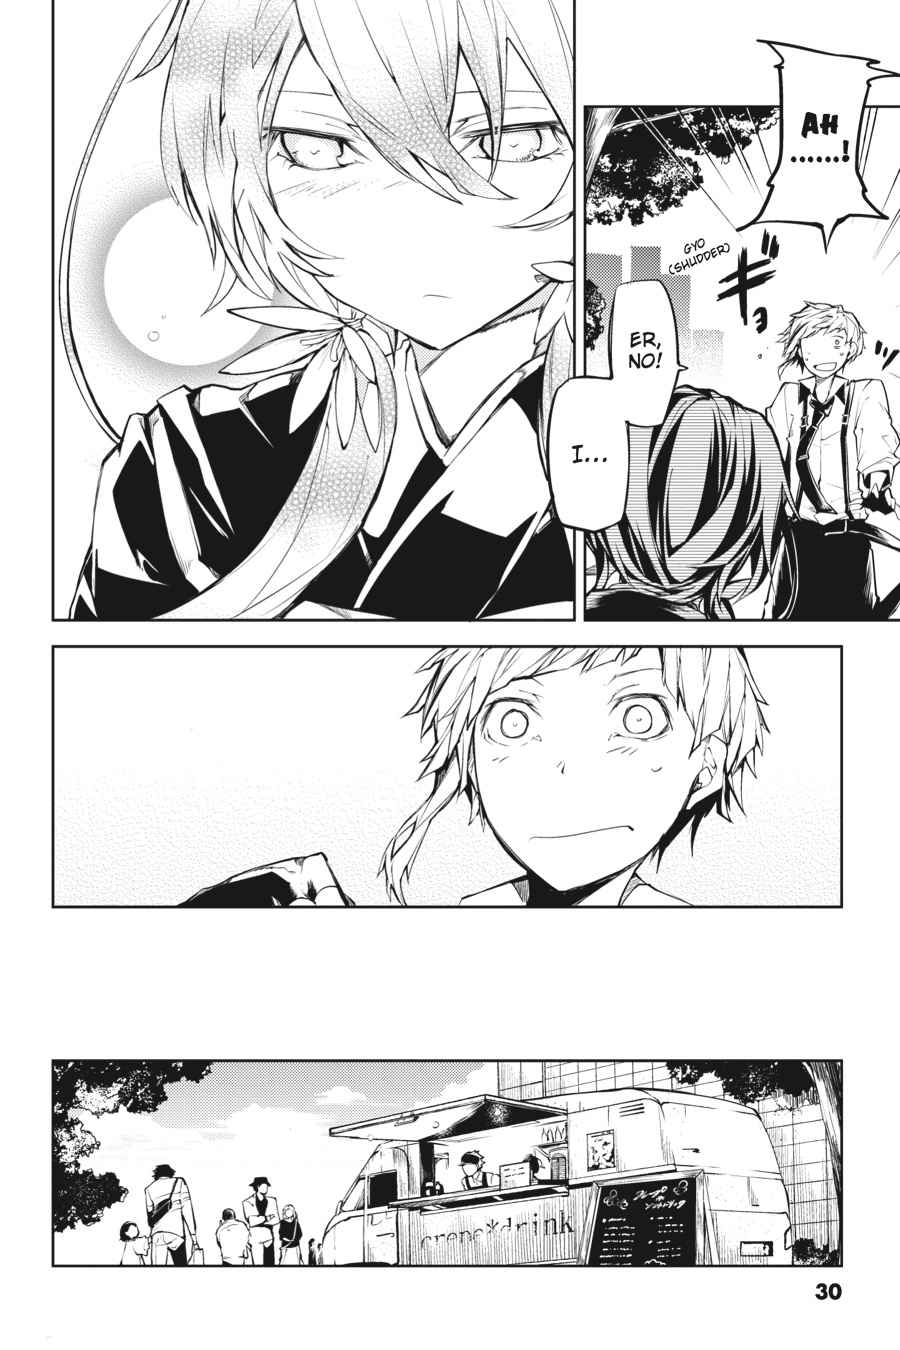 Bungou Stray Dogs Chapter 9 Page 30